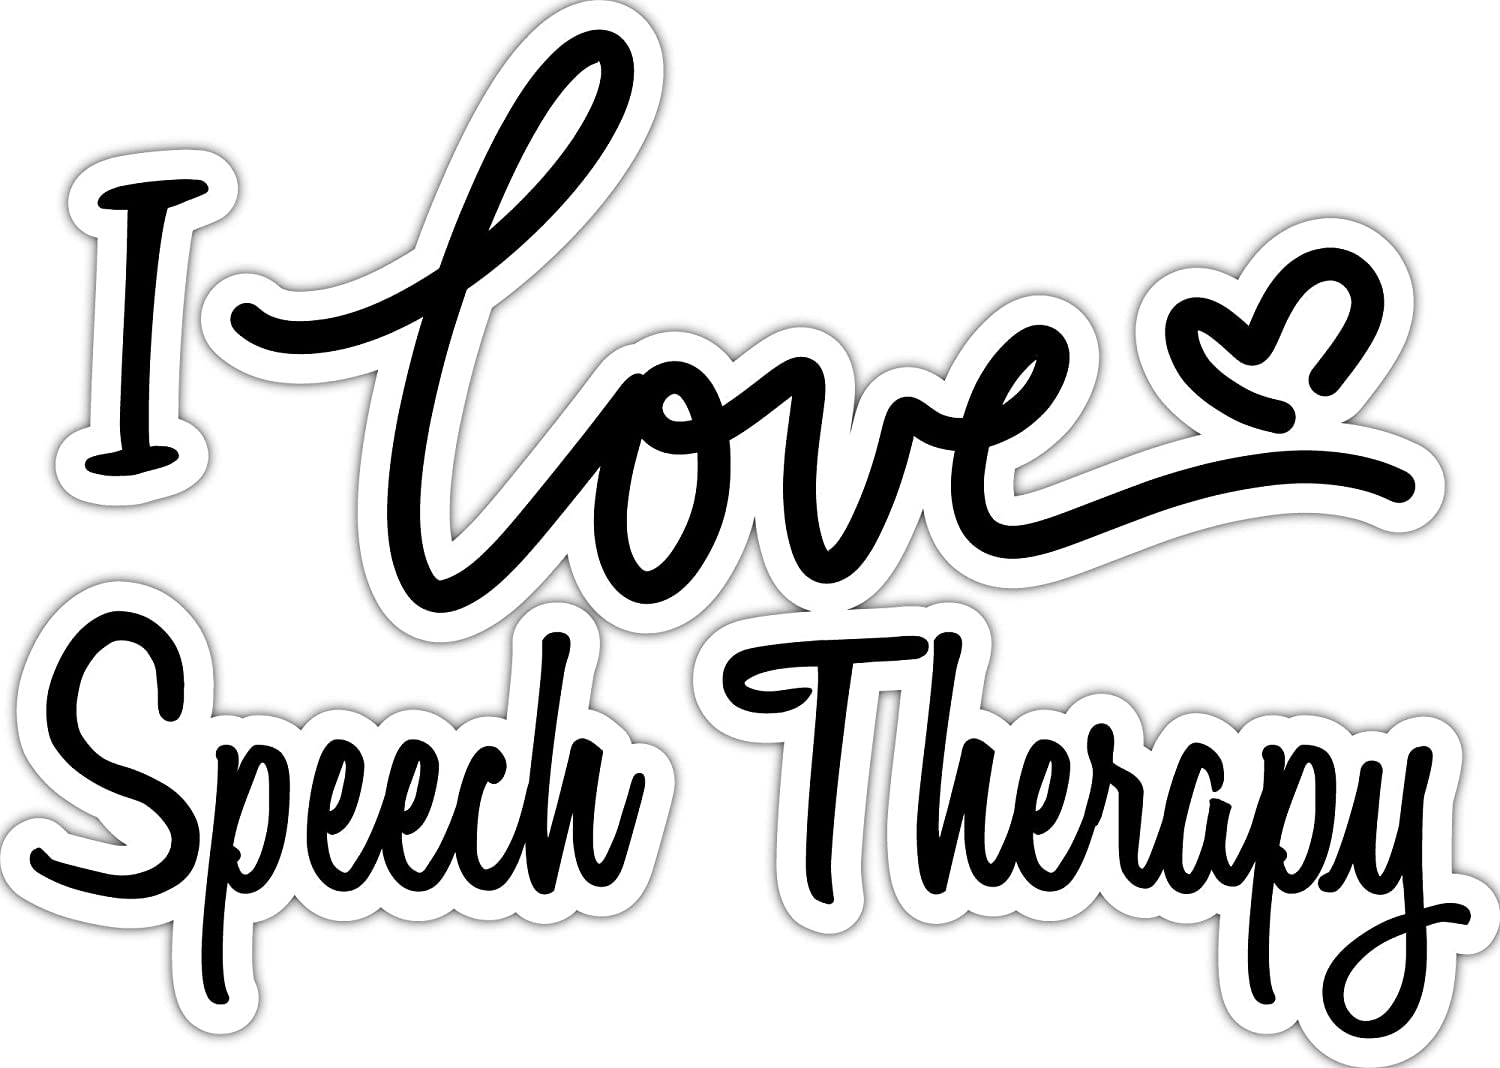 4 All Times I Love Speech Therapy Automotive Car Decal for Cars, Trucks, Laptops (8.0 W x 5.7 H)